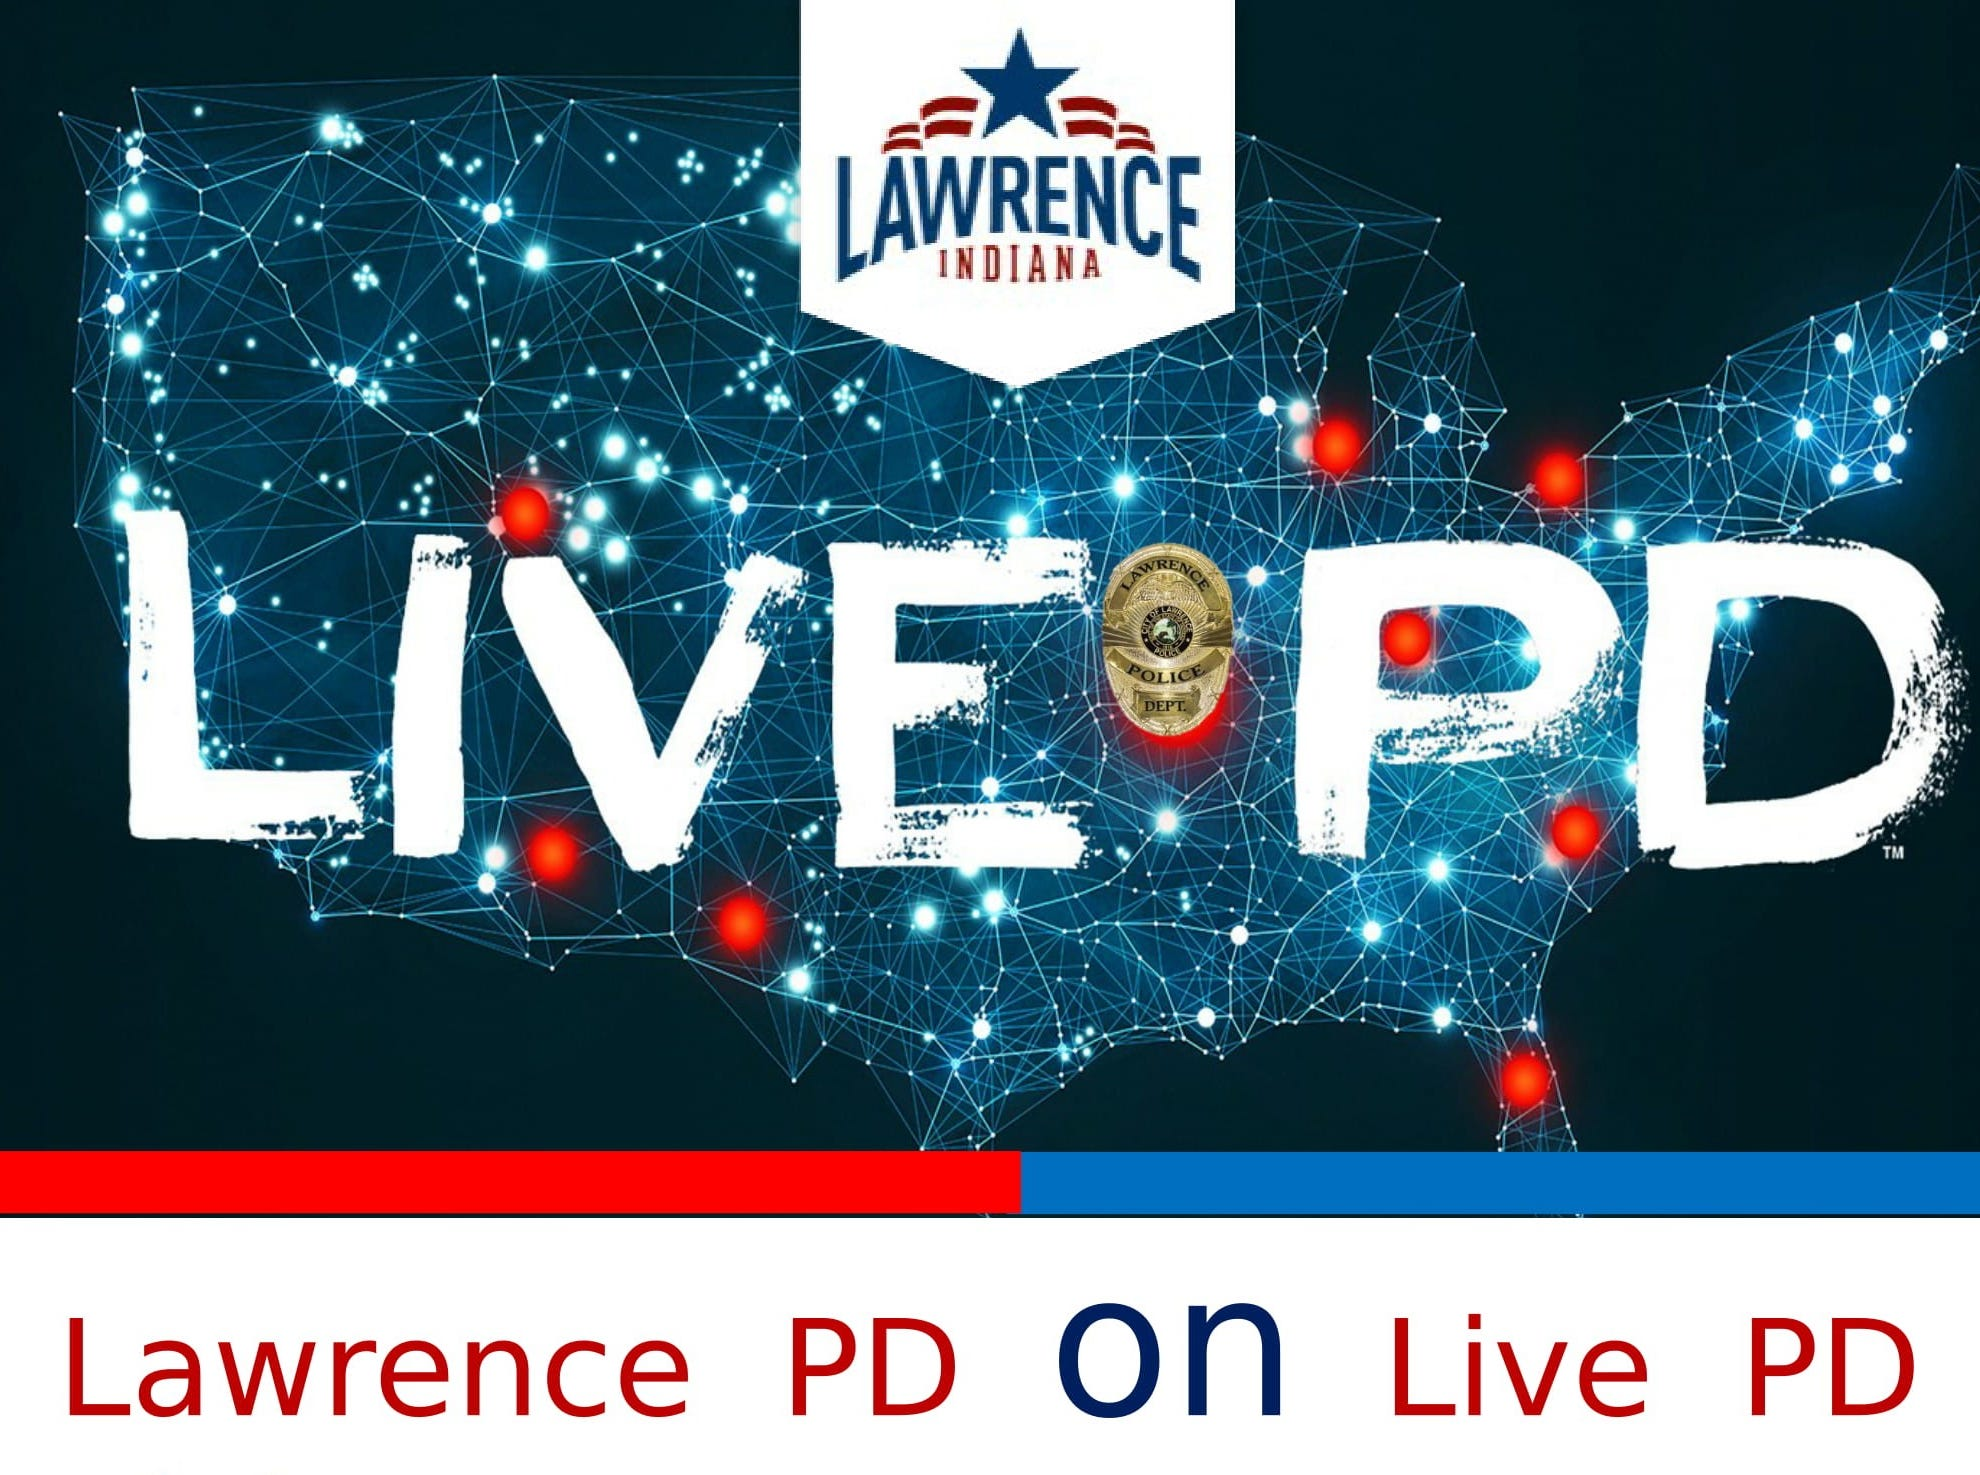 Lawrence will see its police department in action on the 200th episode of 'Live PD'